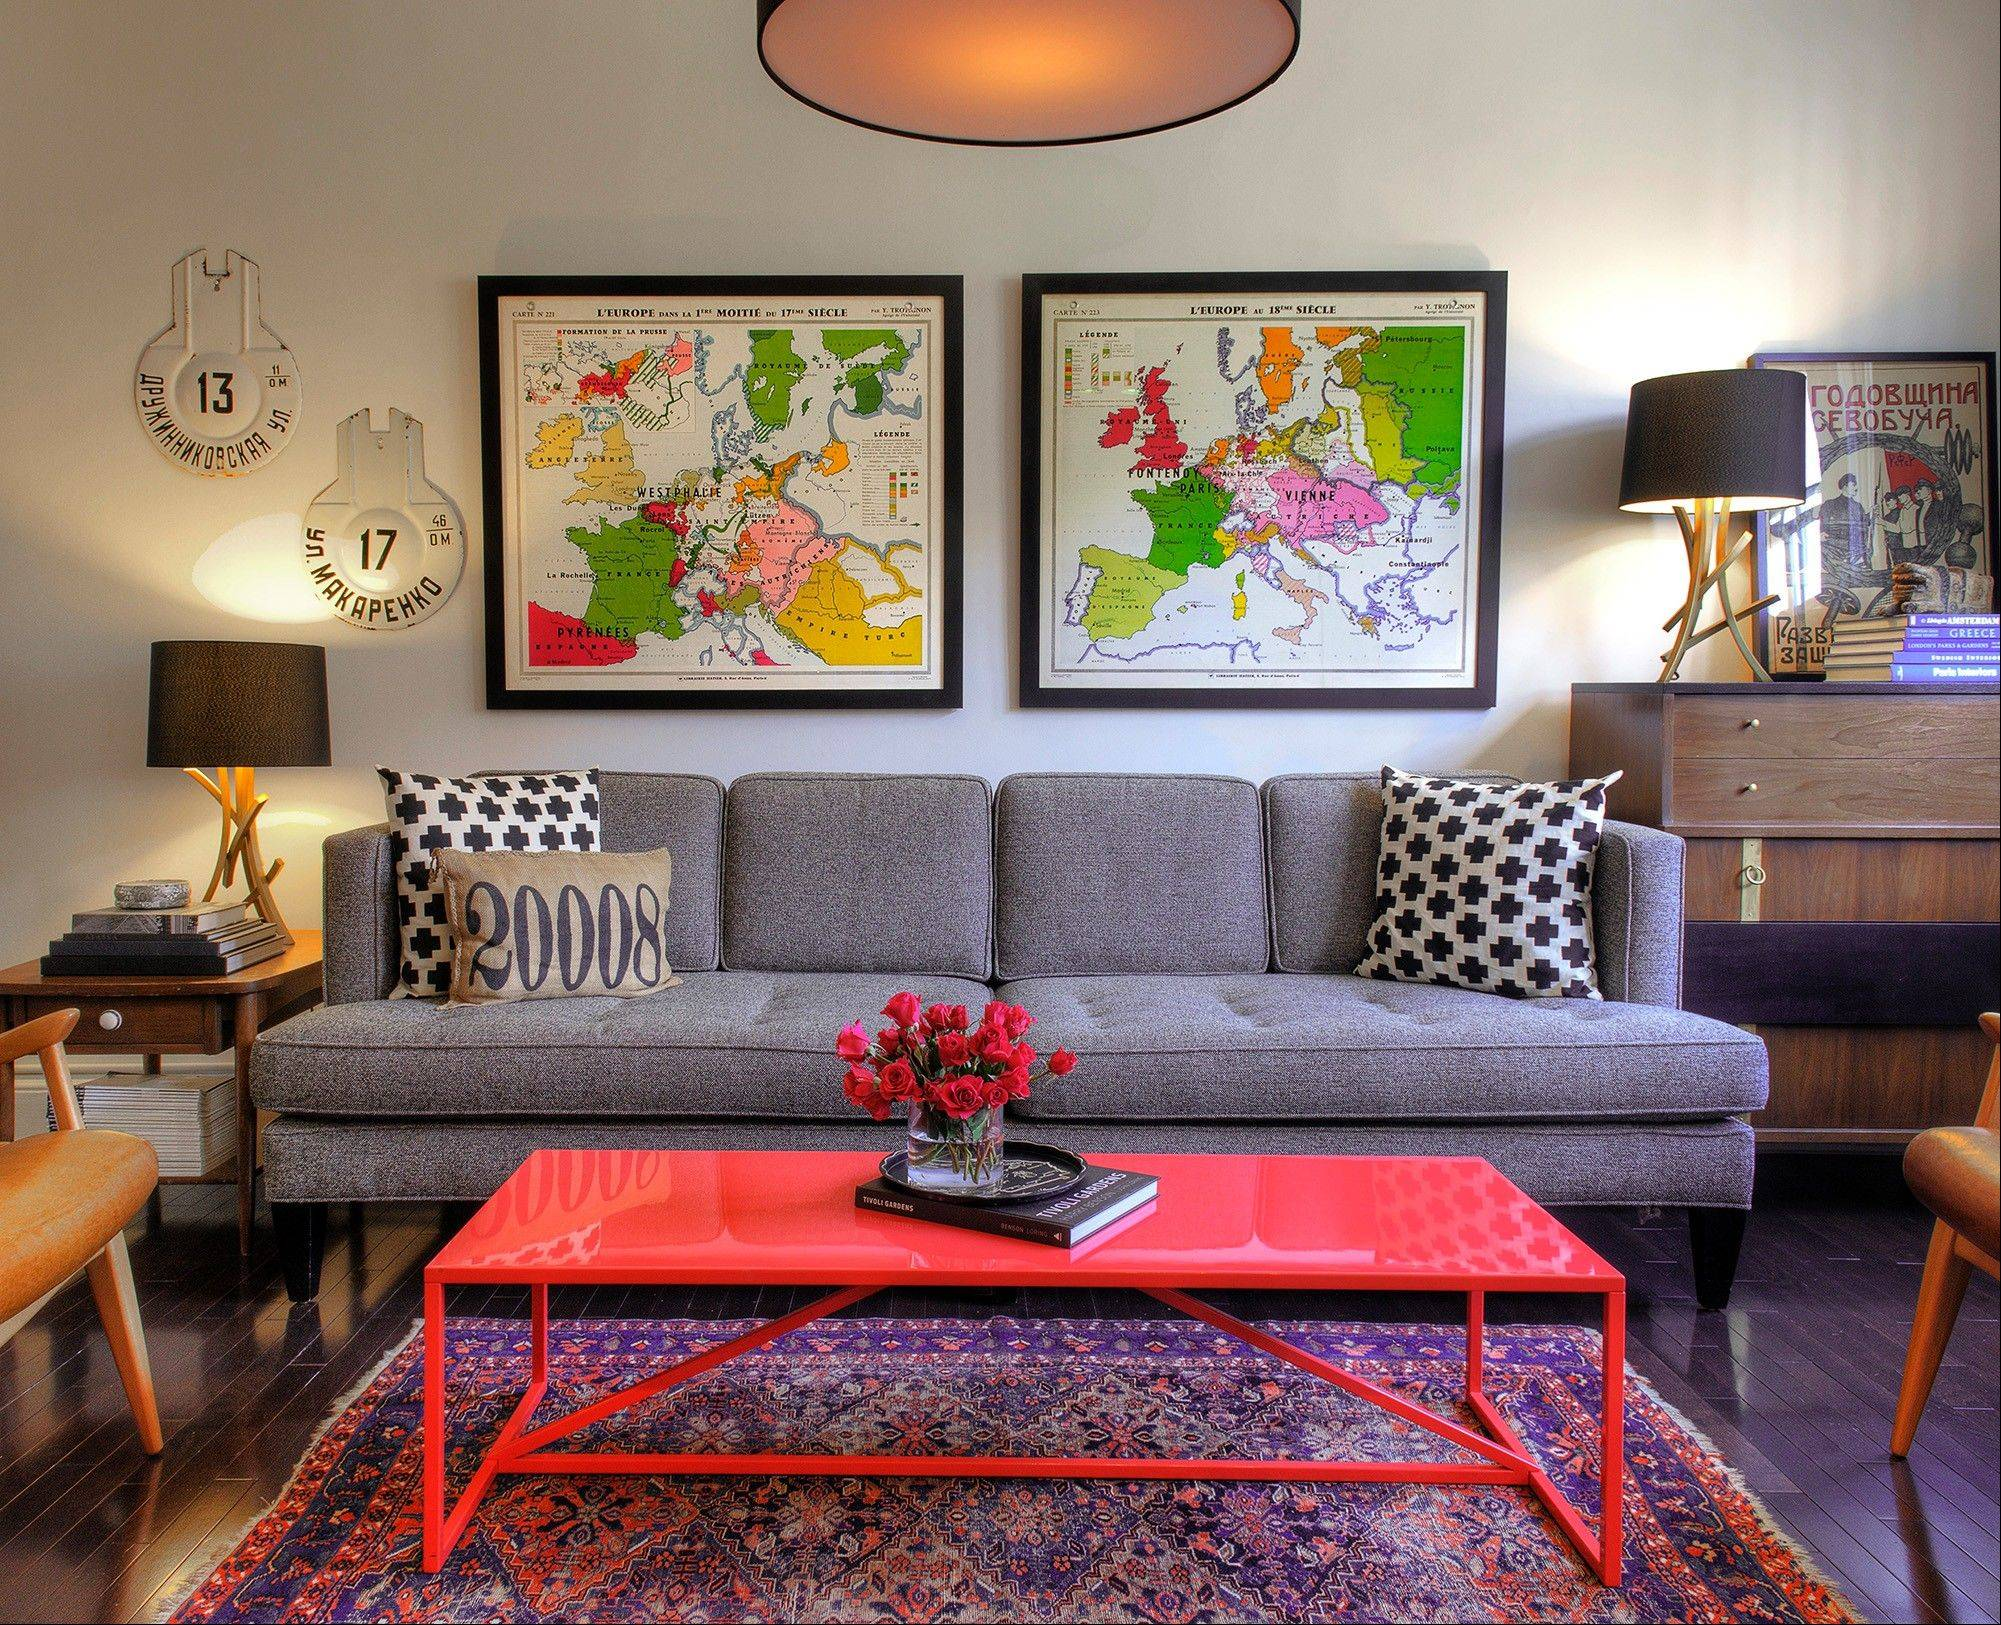 A small space and a small budget challenge a young couple to refine their vision; a view of the living room in Kiera and Michael Kushlan's 750-square foot condo in Washington.